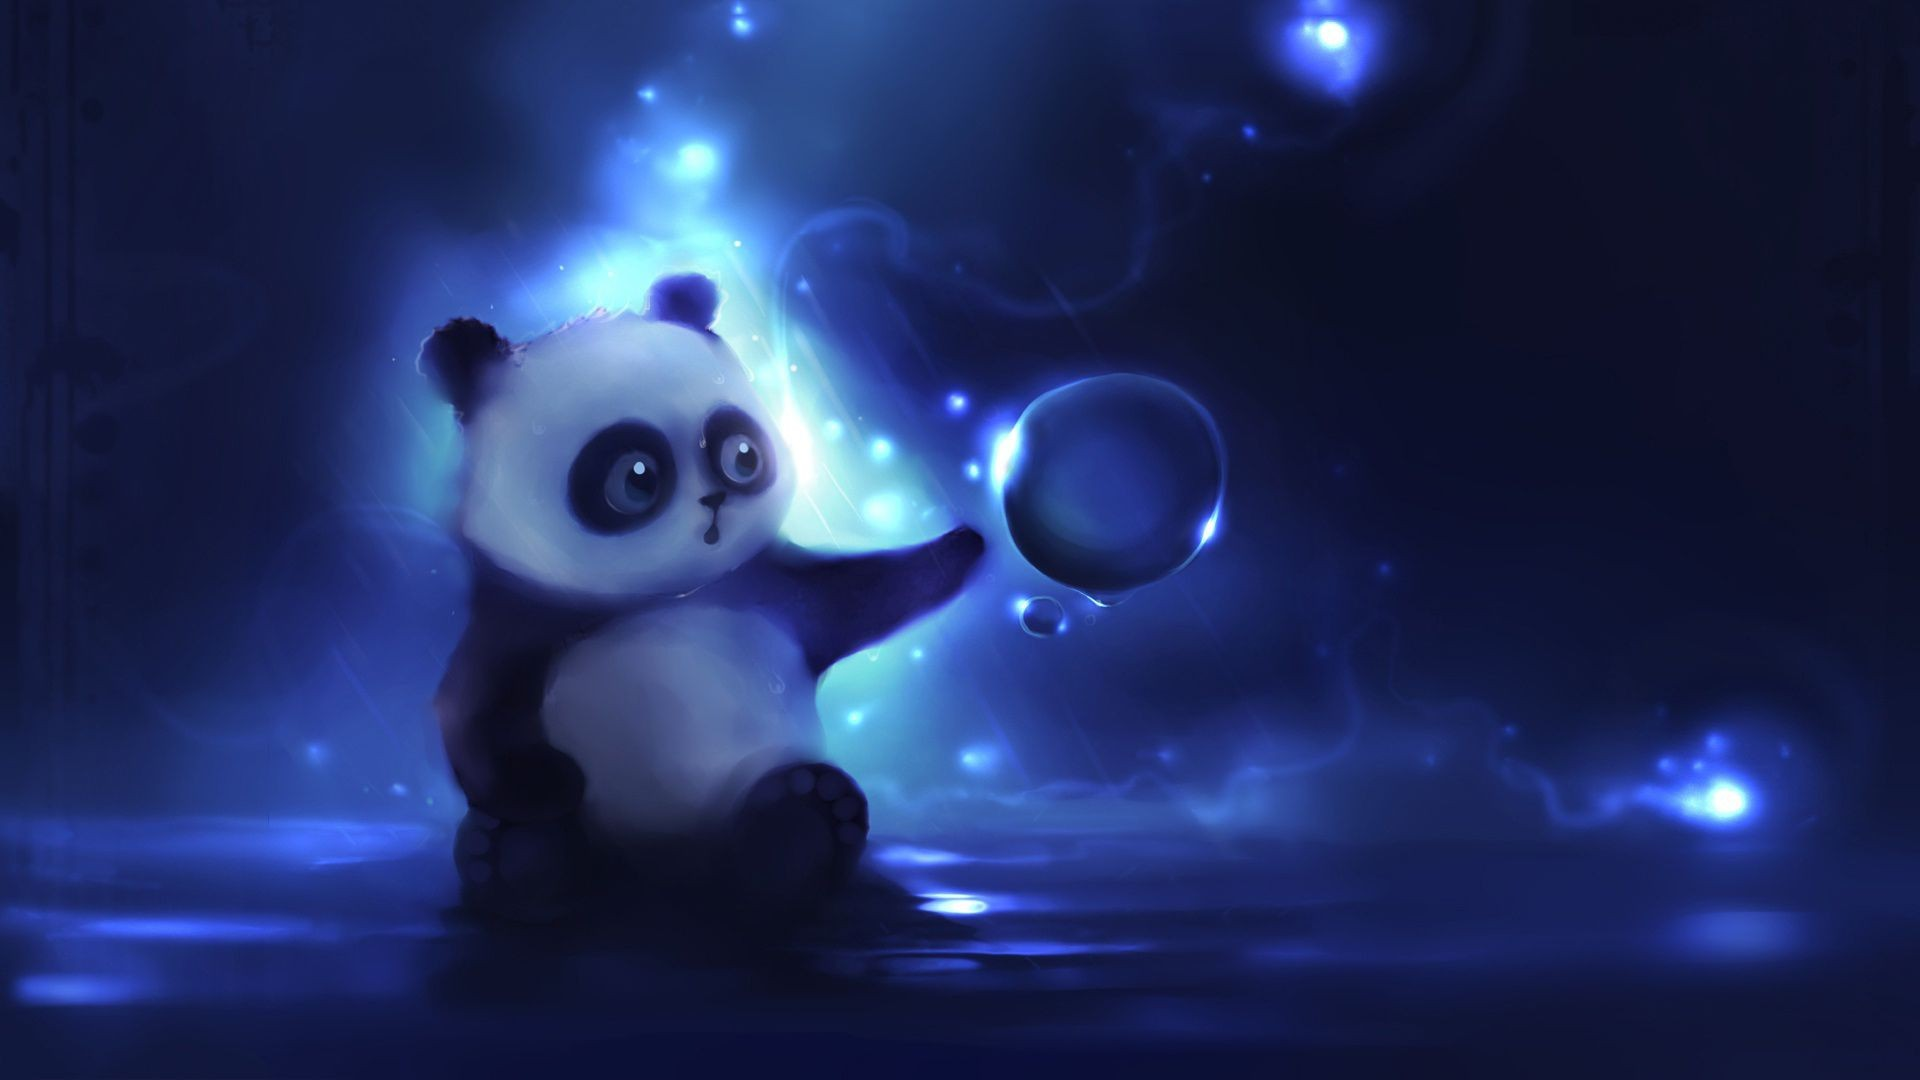 Cute Wallpapers For Mobile Phones Free Download: Panda Background ·① Download Free Stunning Full HD